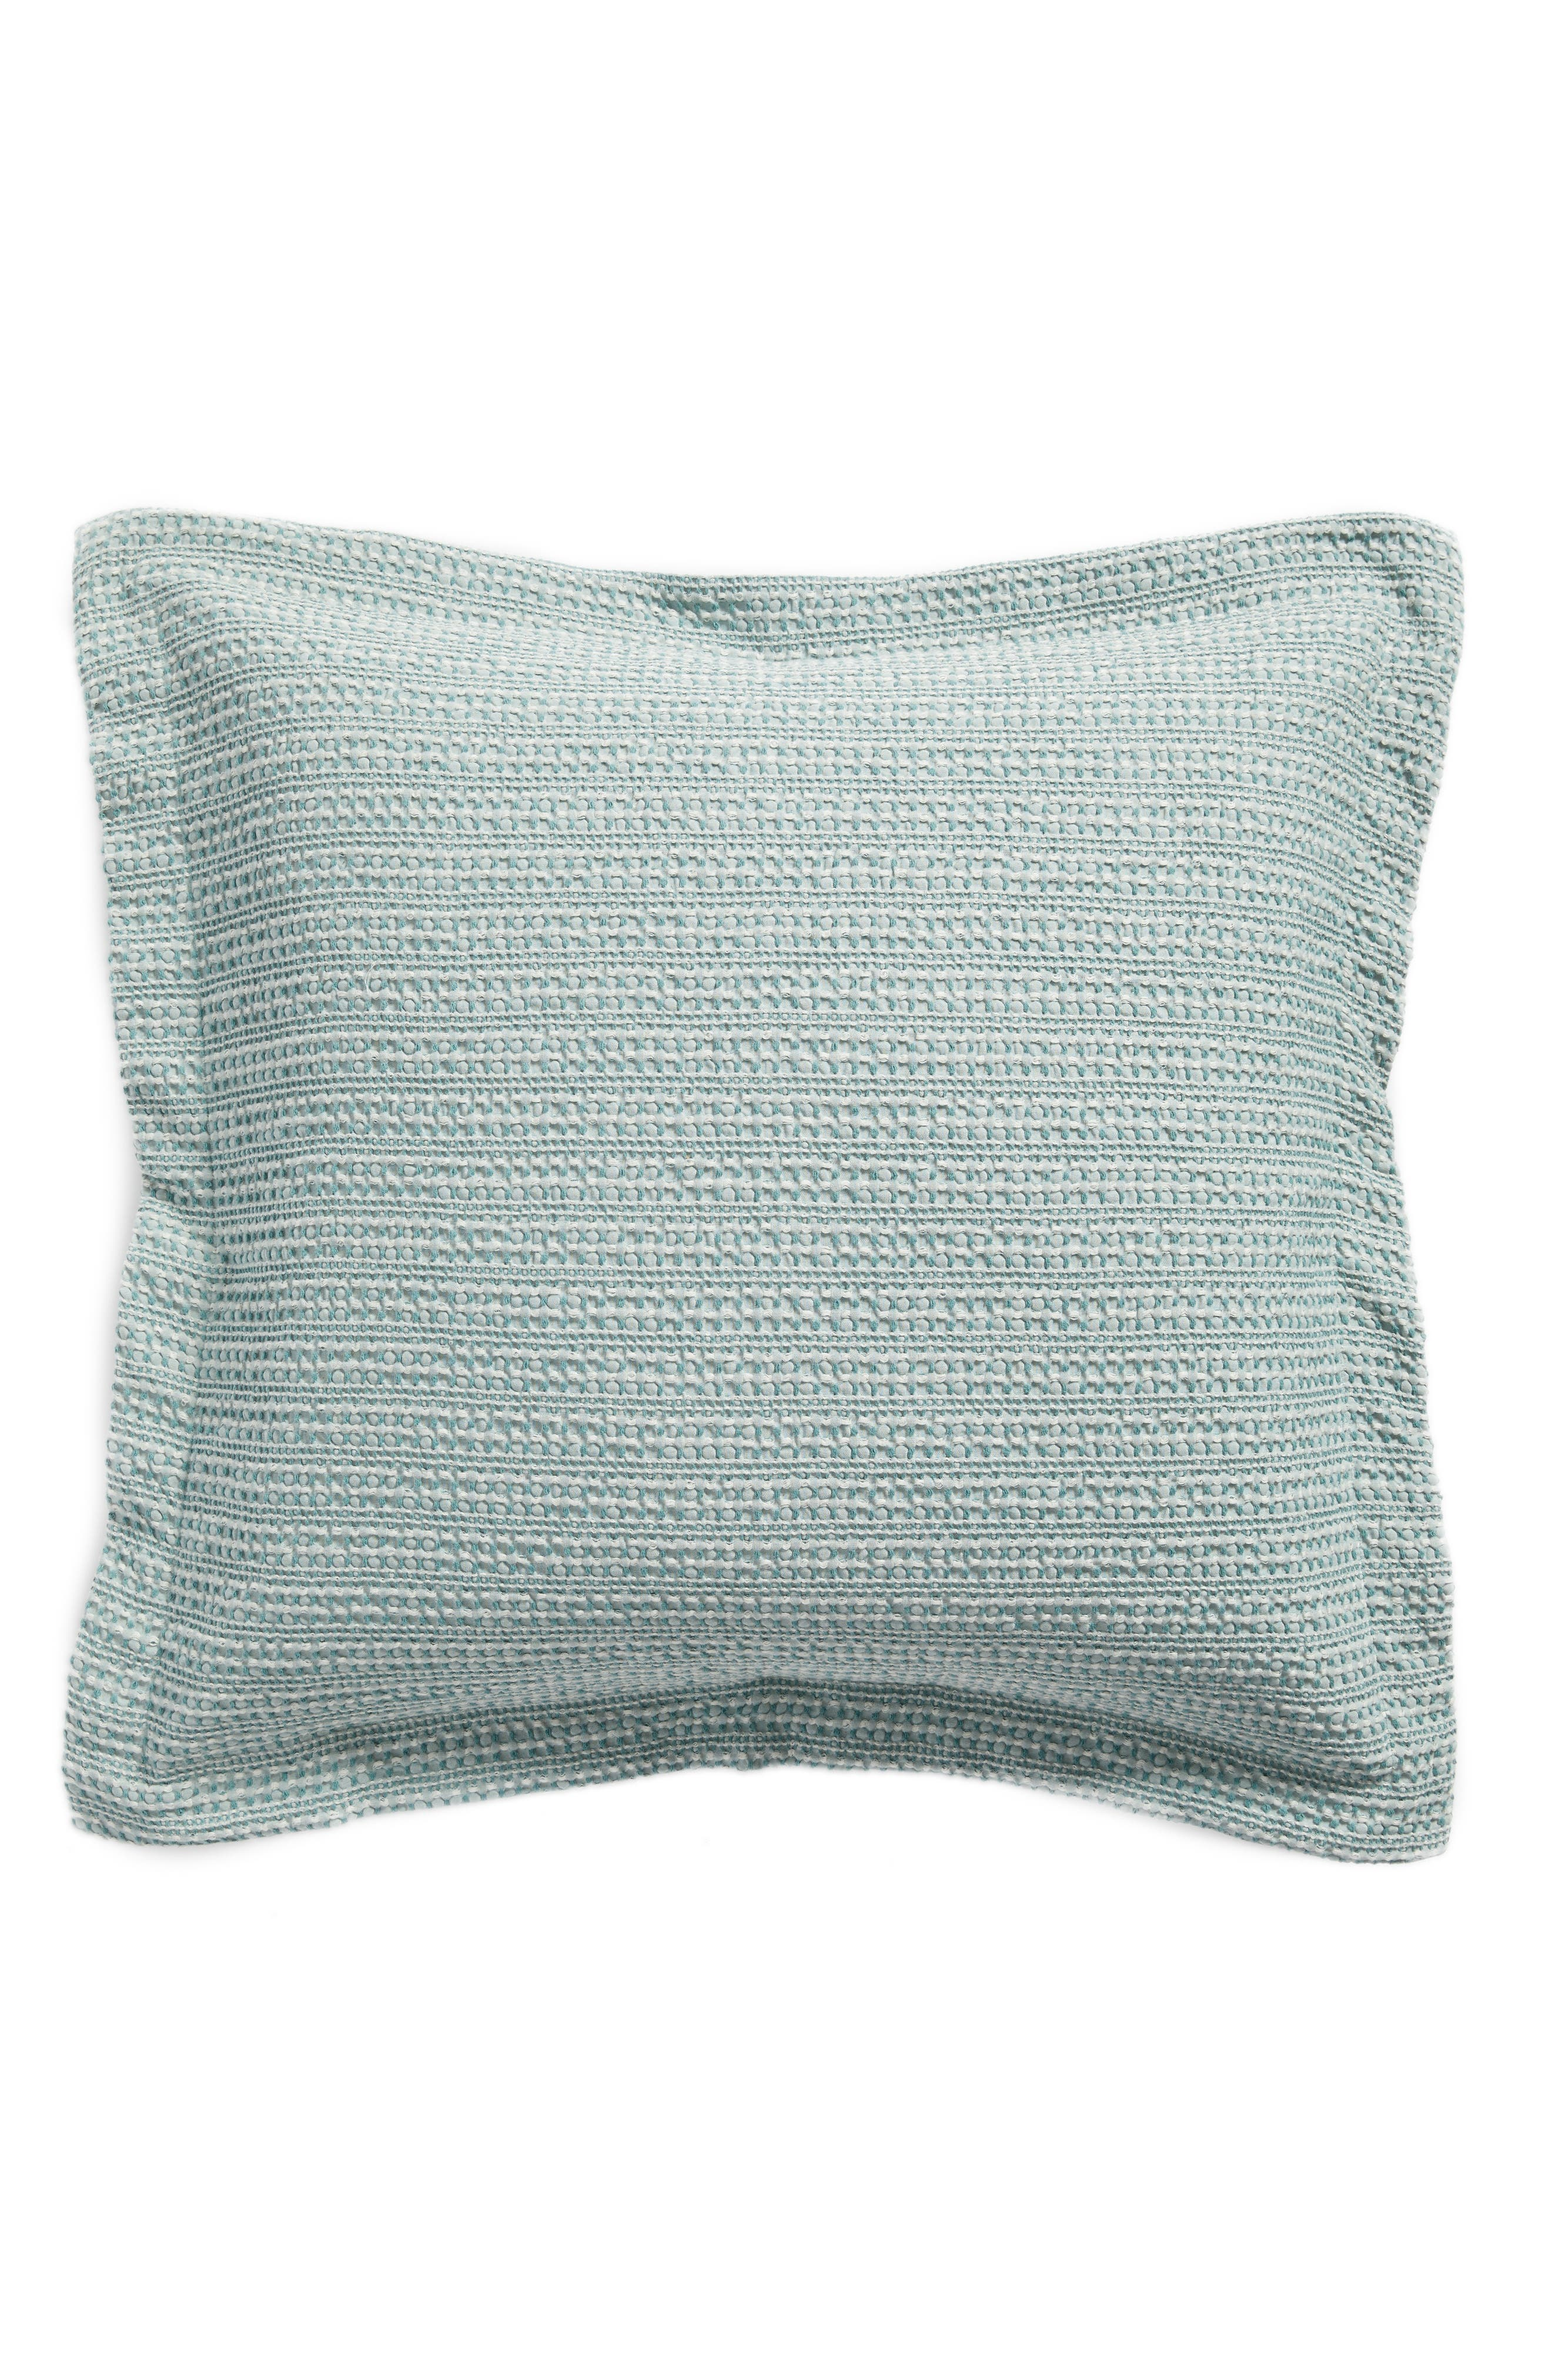 Stitched Accent Pillow,                             Main thumbnail 1, color,                             Spa